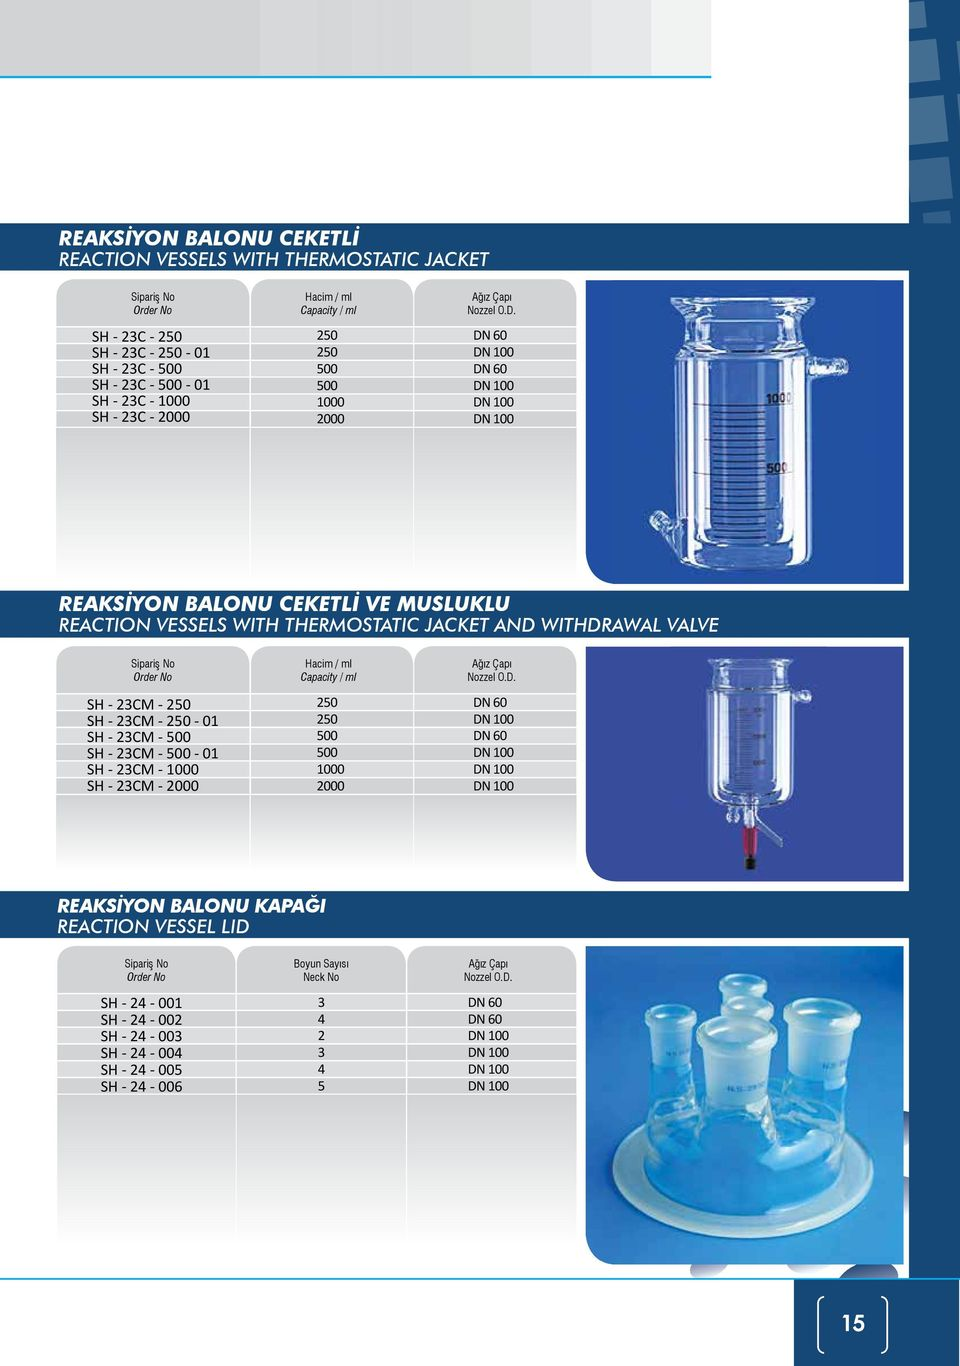 DN 60 DN 100 DN 60 DN 100 DN 100 DN 100 REAKSİYON BALONU CEKETLİ VE MUSLUKLU REACTION VESSELS WITH THERMOSTATIC JACKET AND WITHDRAWAL VALVE SH - 23CM - 250 SH - 23CM - 250-01 SH - 23CM -